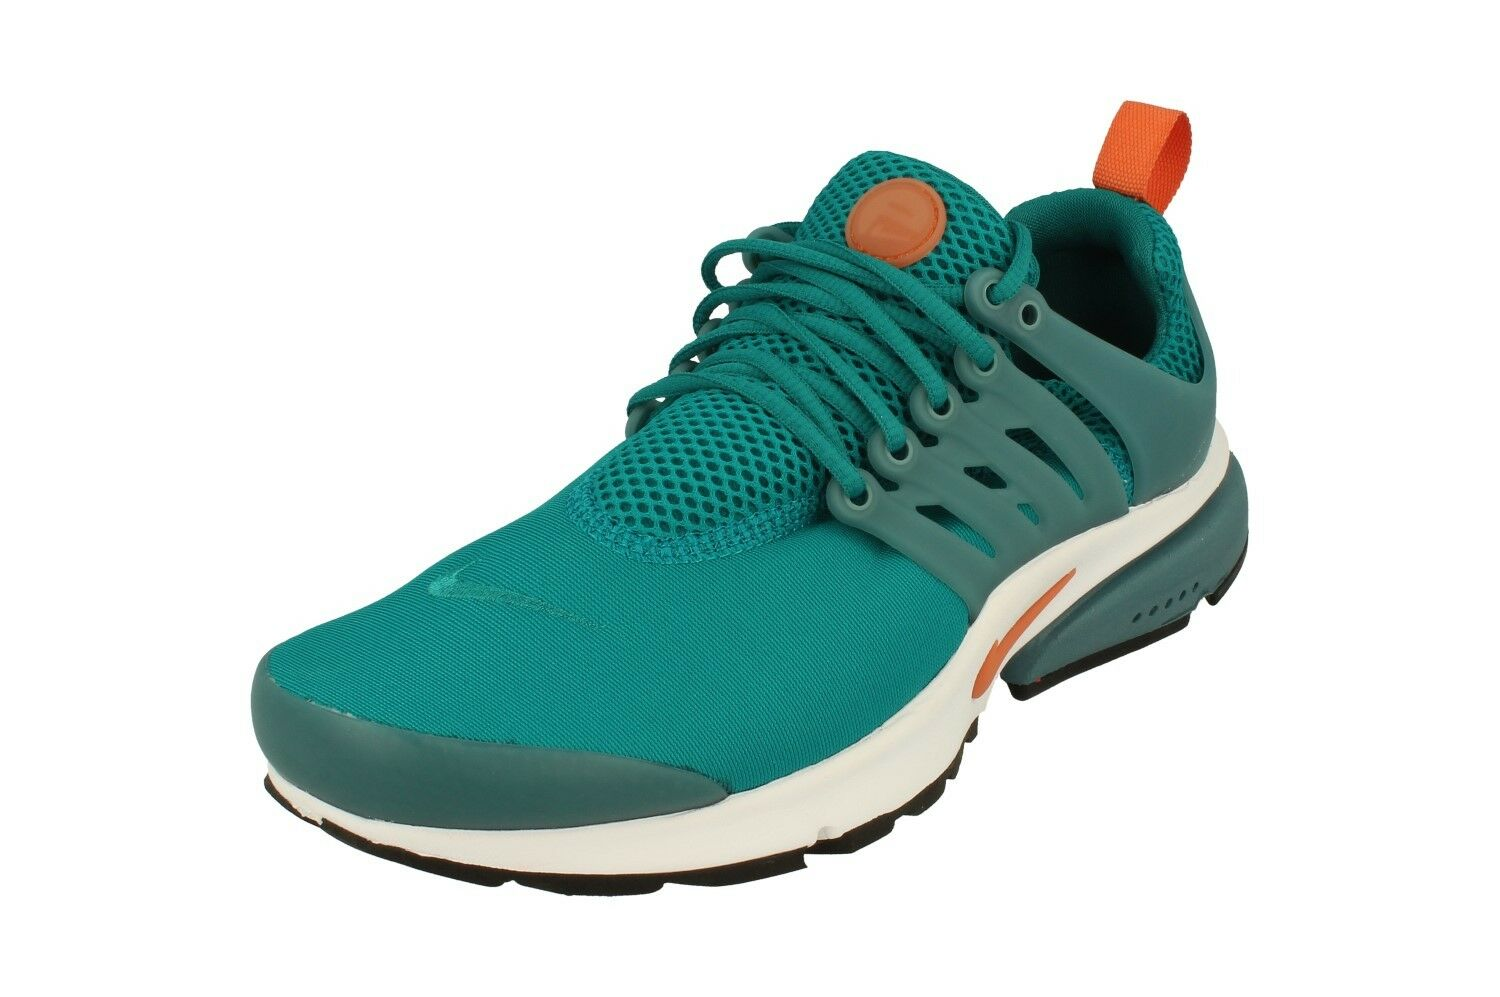 Nike Air Presto Essential Mens Running Trainers 848187 Sneakers Shoes 404 Special limited time